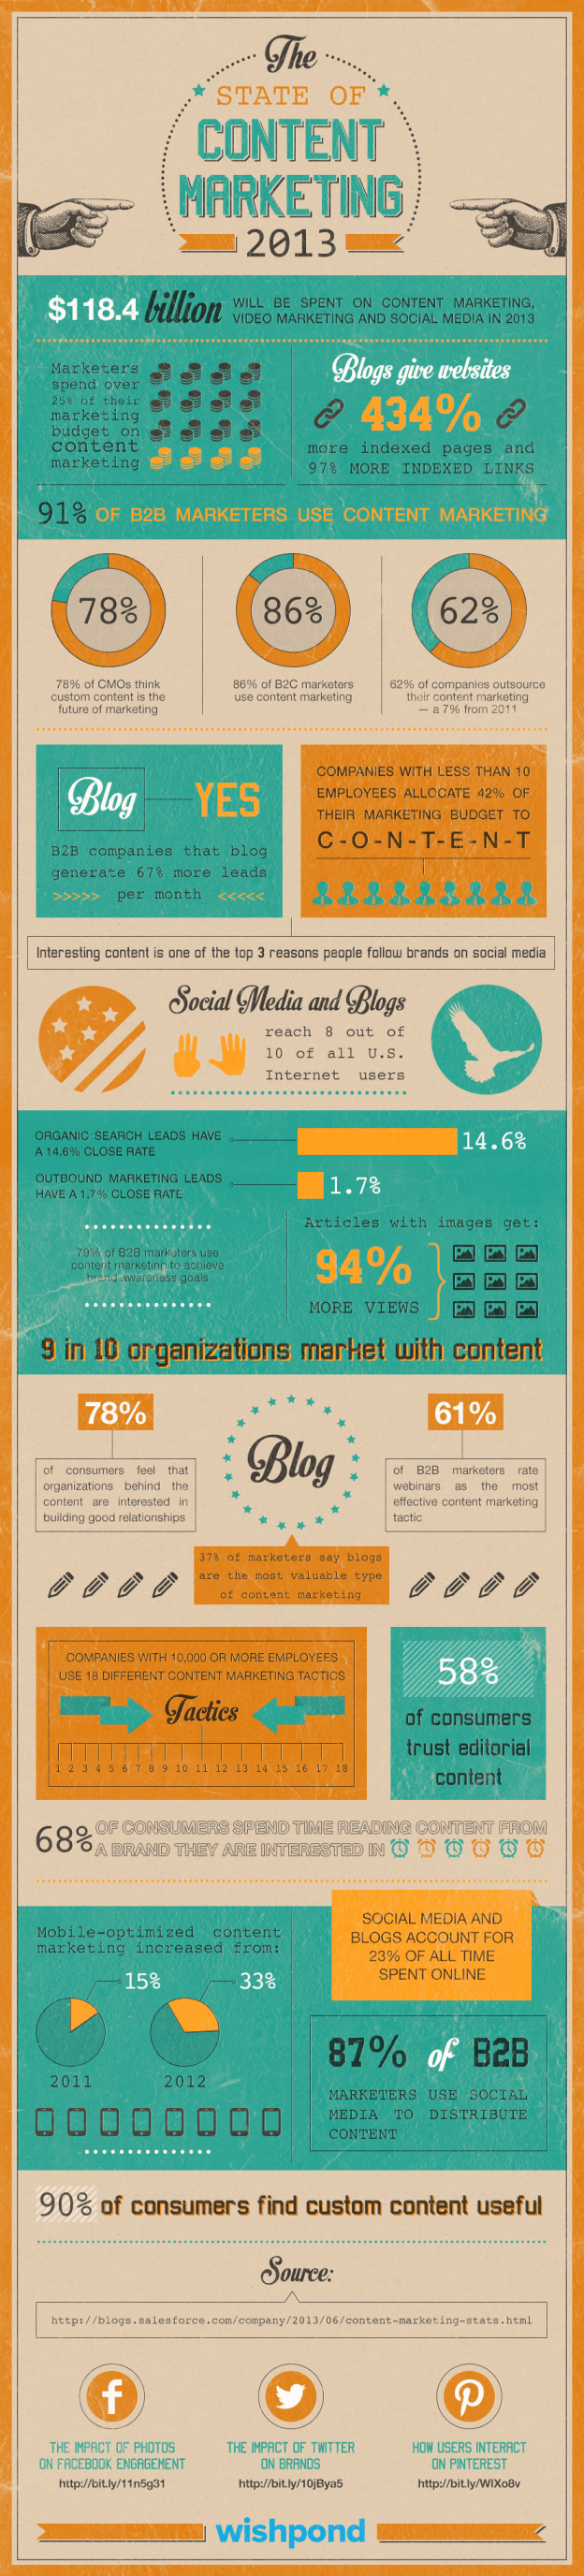 social media and blogs generate more leads for brands